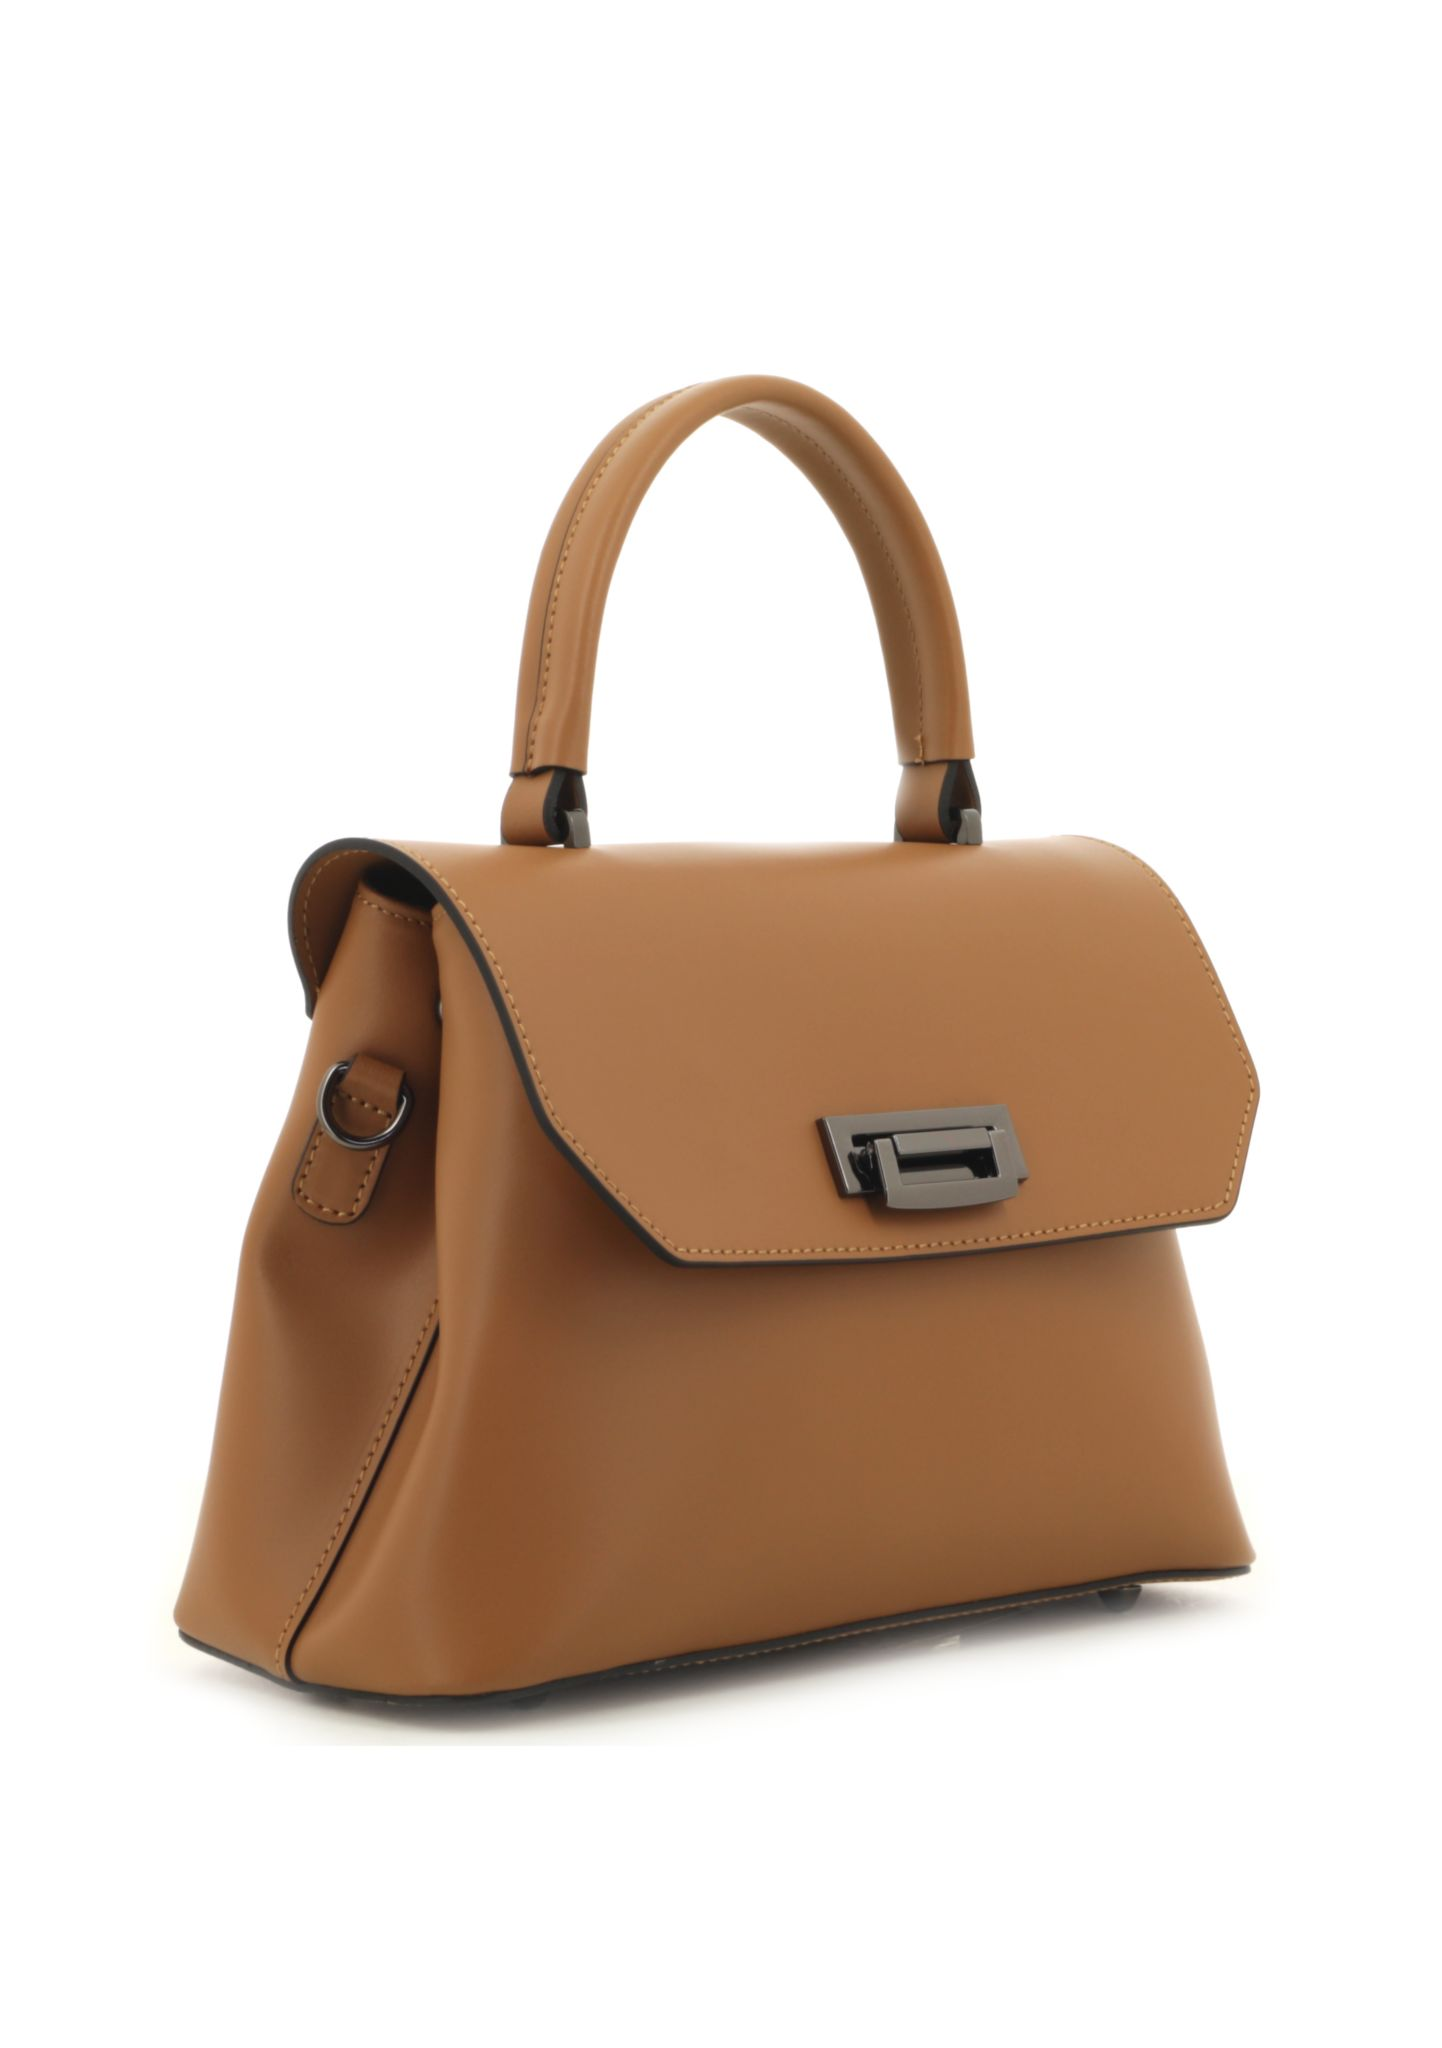 Cognac Ruga Leather Handbag With Detachable Strap 034 detail 1